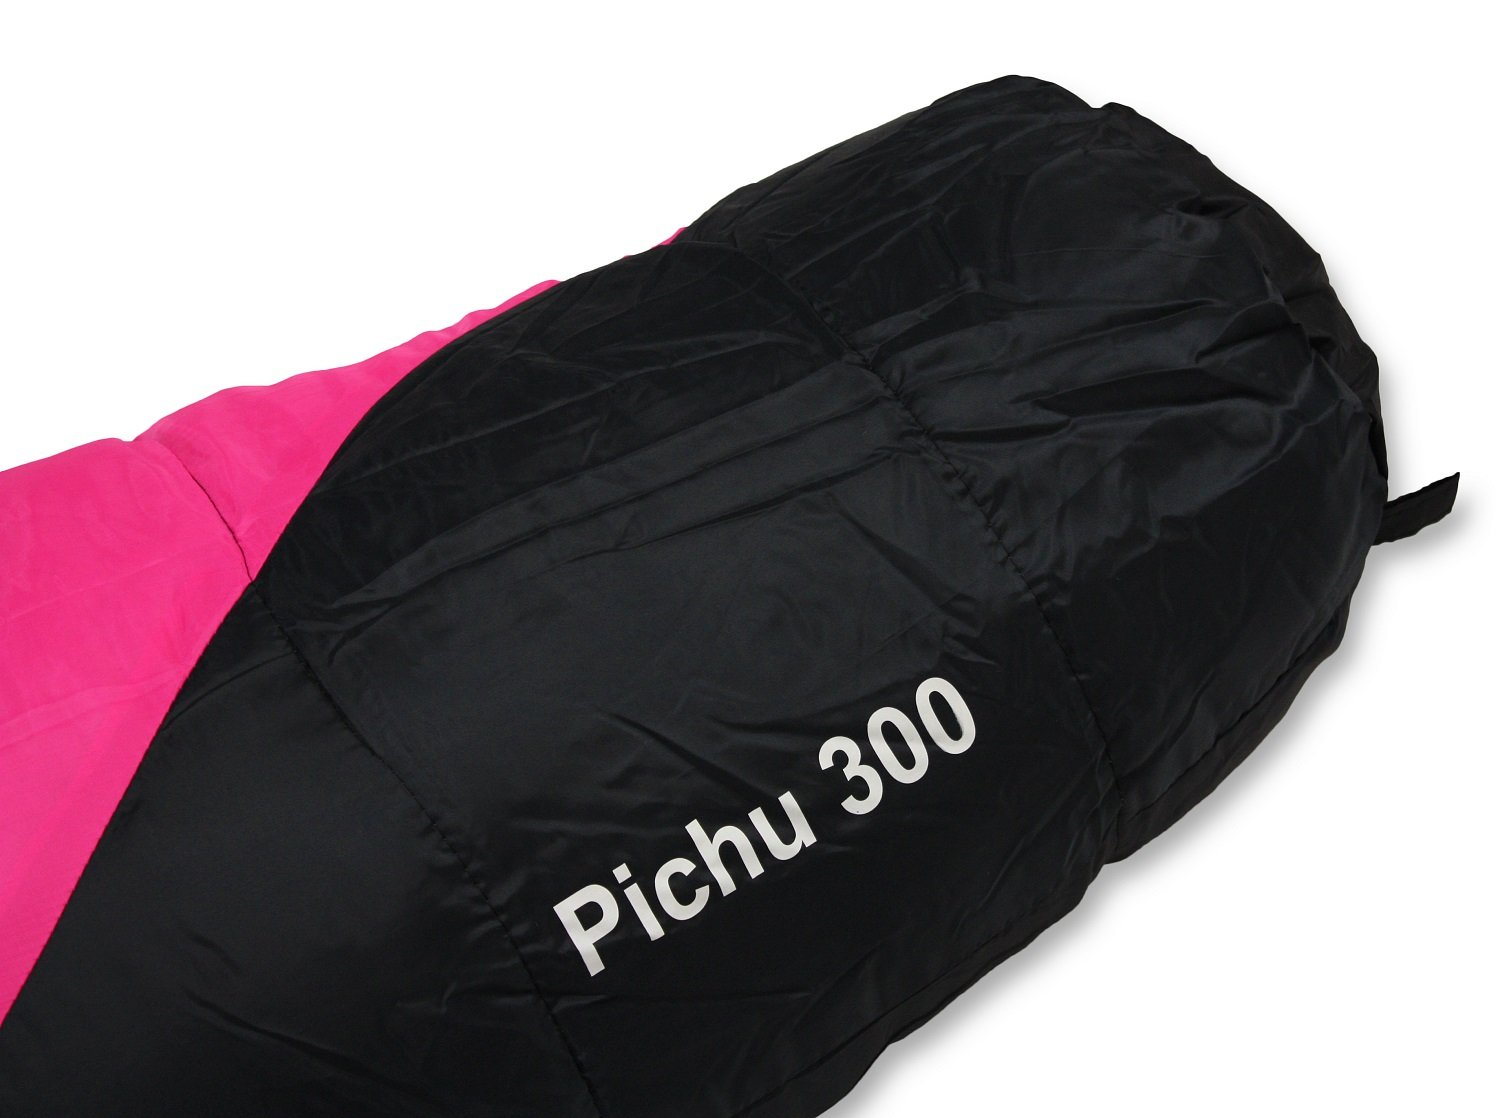 Andes Pichu 300 2-3 Season Childrens/Kids Camping Sleeping Bag, 300GSM Filling - Compression Carry Bag Included, Ideal For Camping, Cubs, Scouts, Guides 3